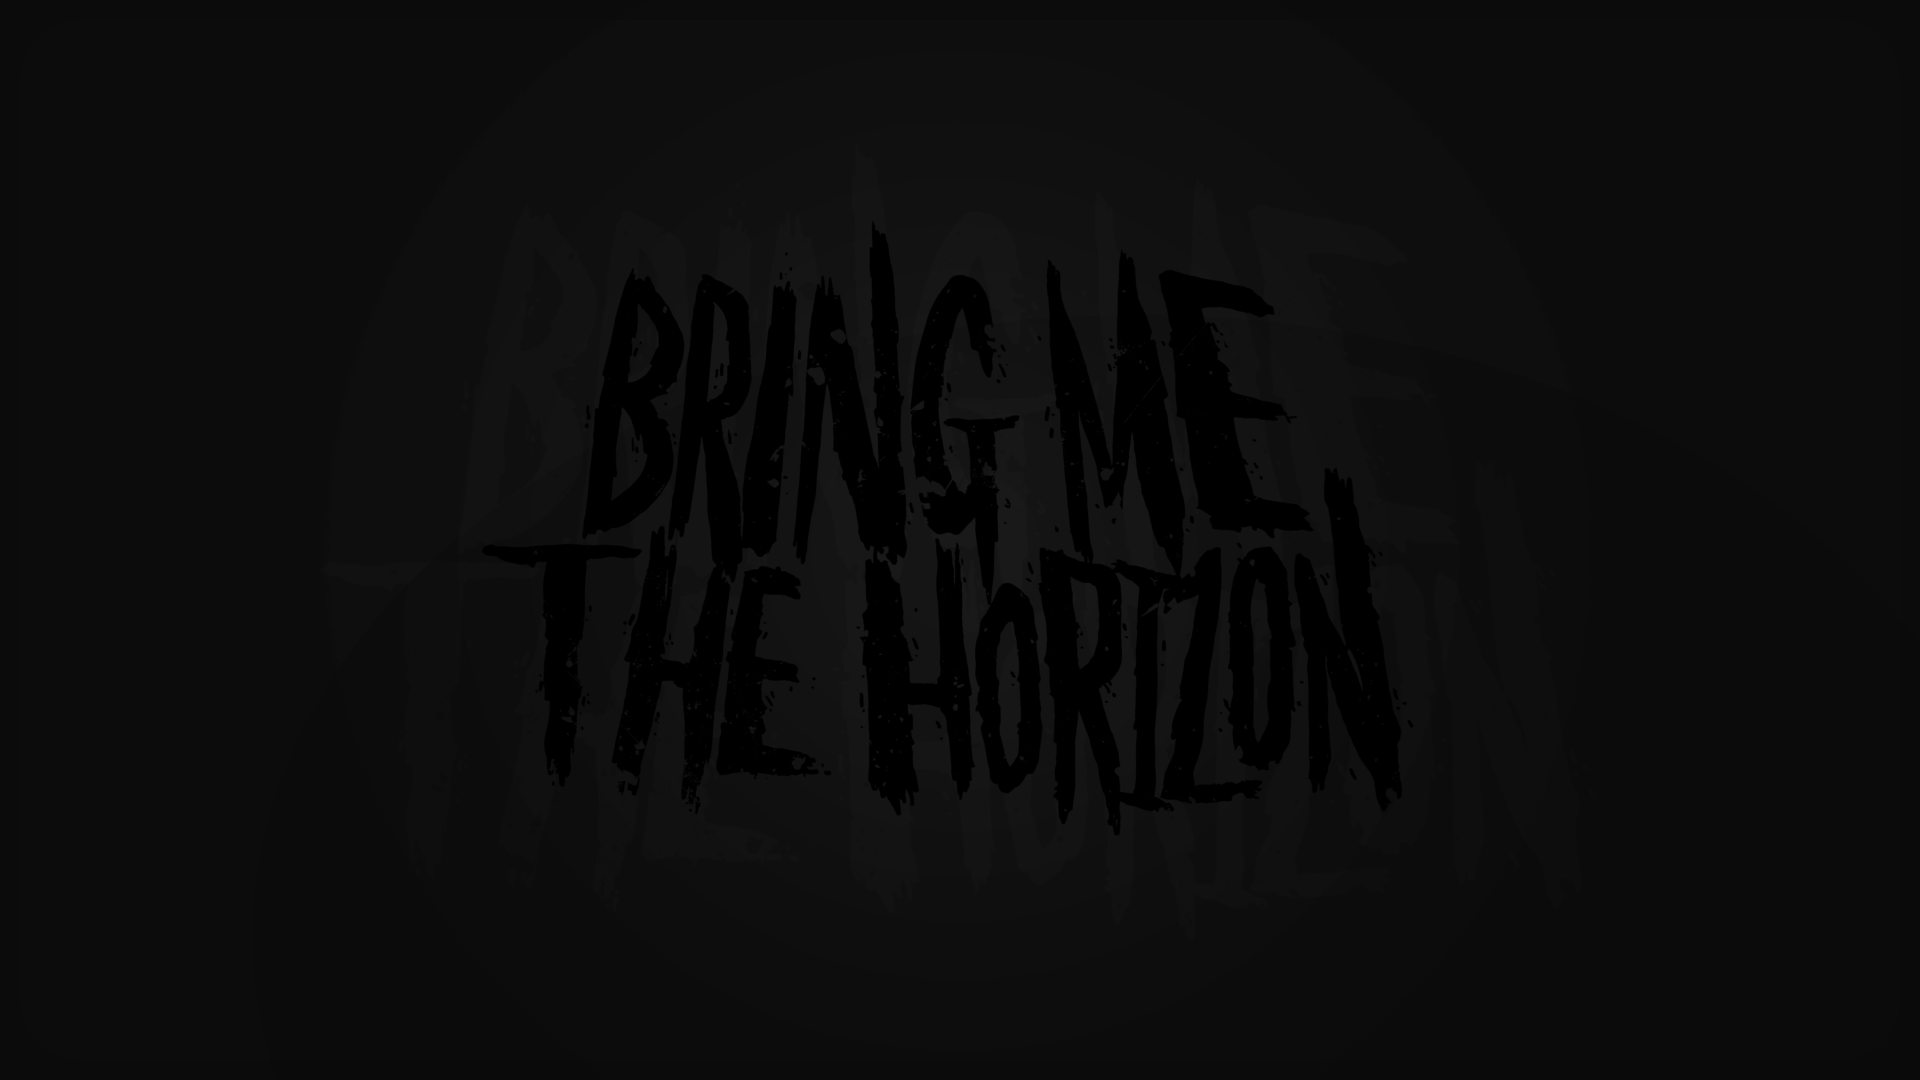 Bring Me The Horizon Wallpapers Wallpaper Cave